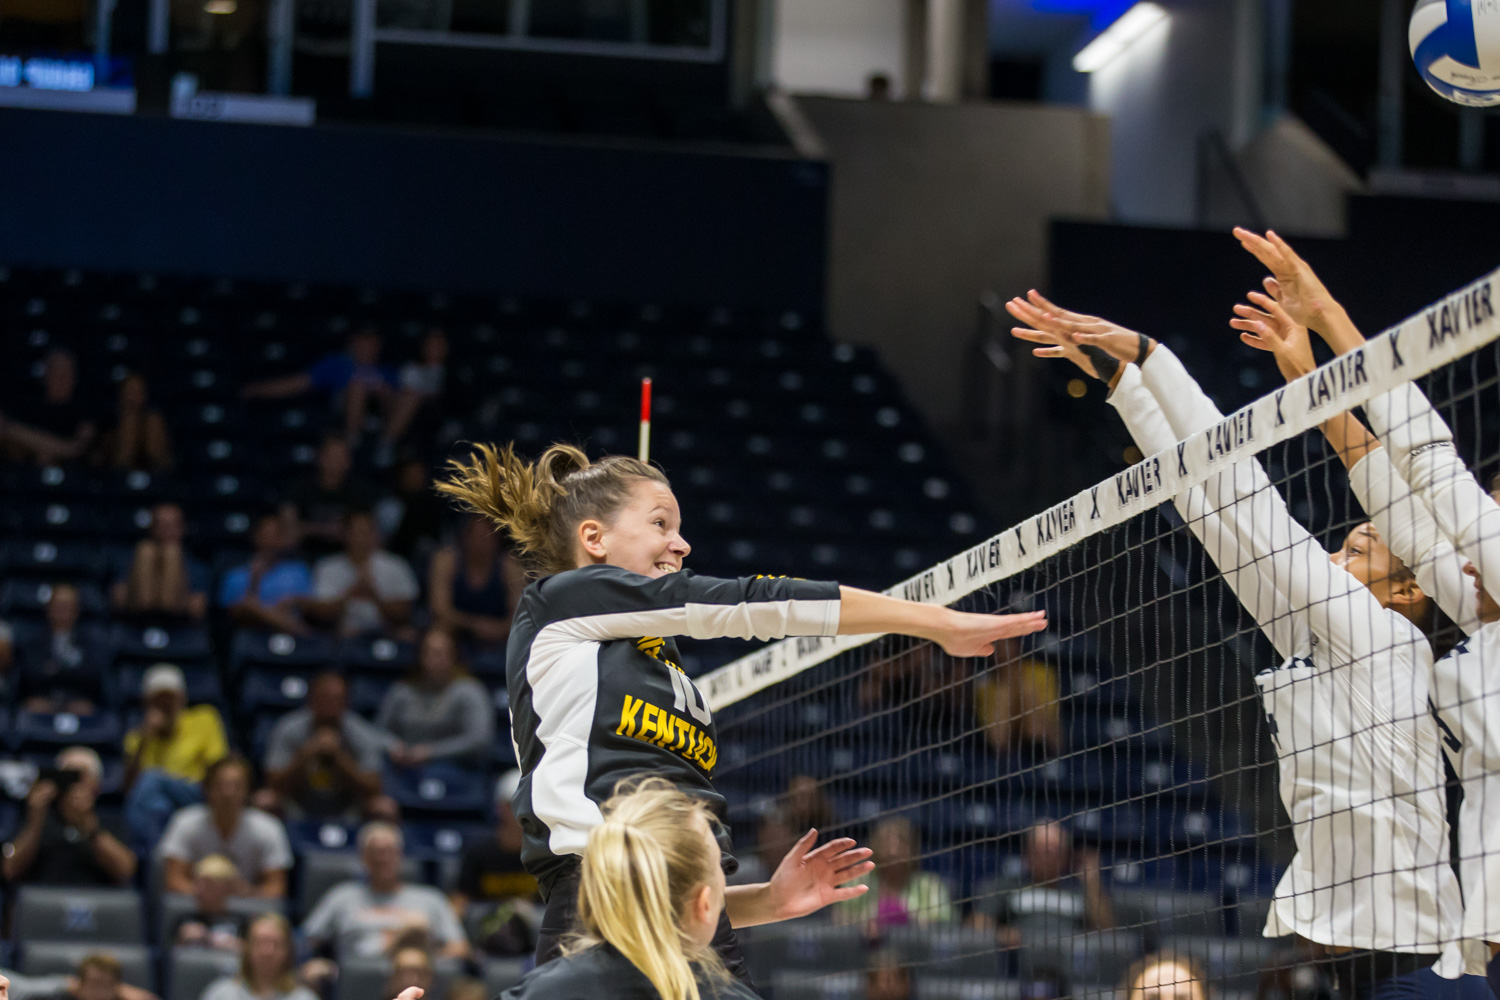 Bailey+Western+%2810%29+hits+the+ball+over+the+net+during+the+game+against+Xavier.+The+Norse+defeated+the+Musketeers+and+took+3+of+4+sets.